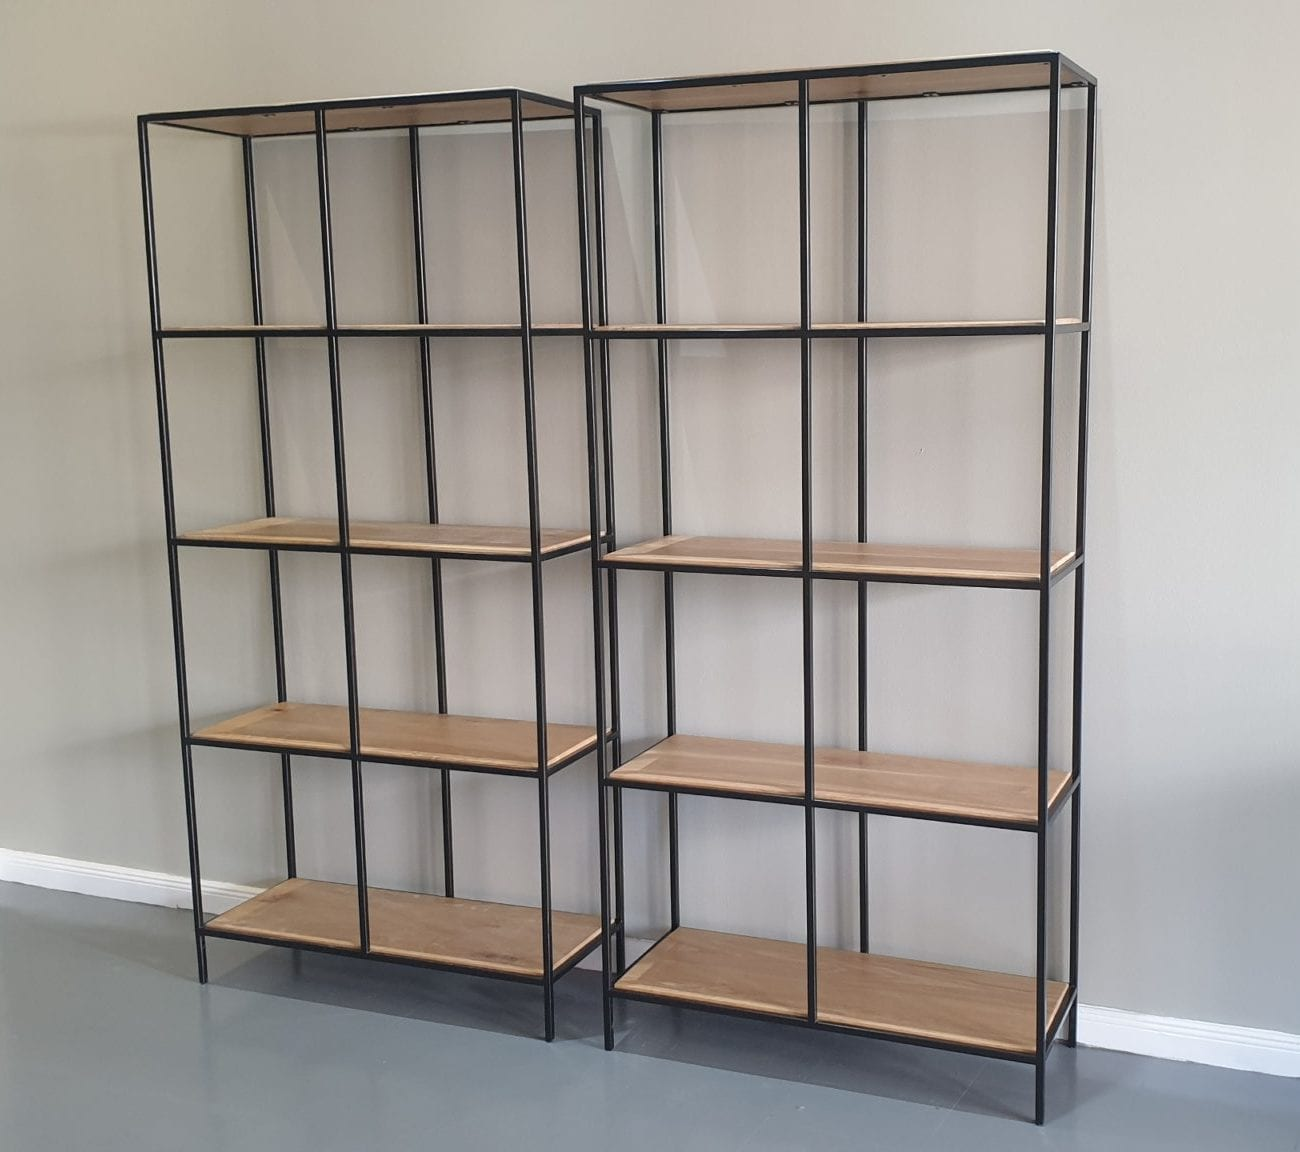 Steel and Wood Bookshelf